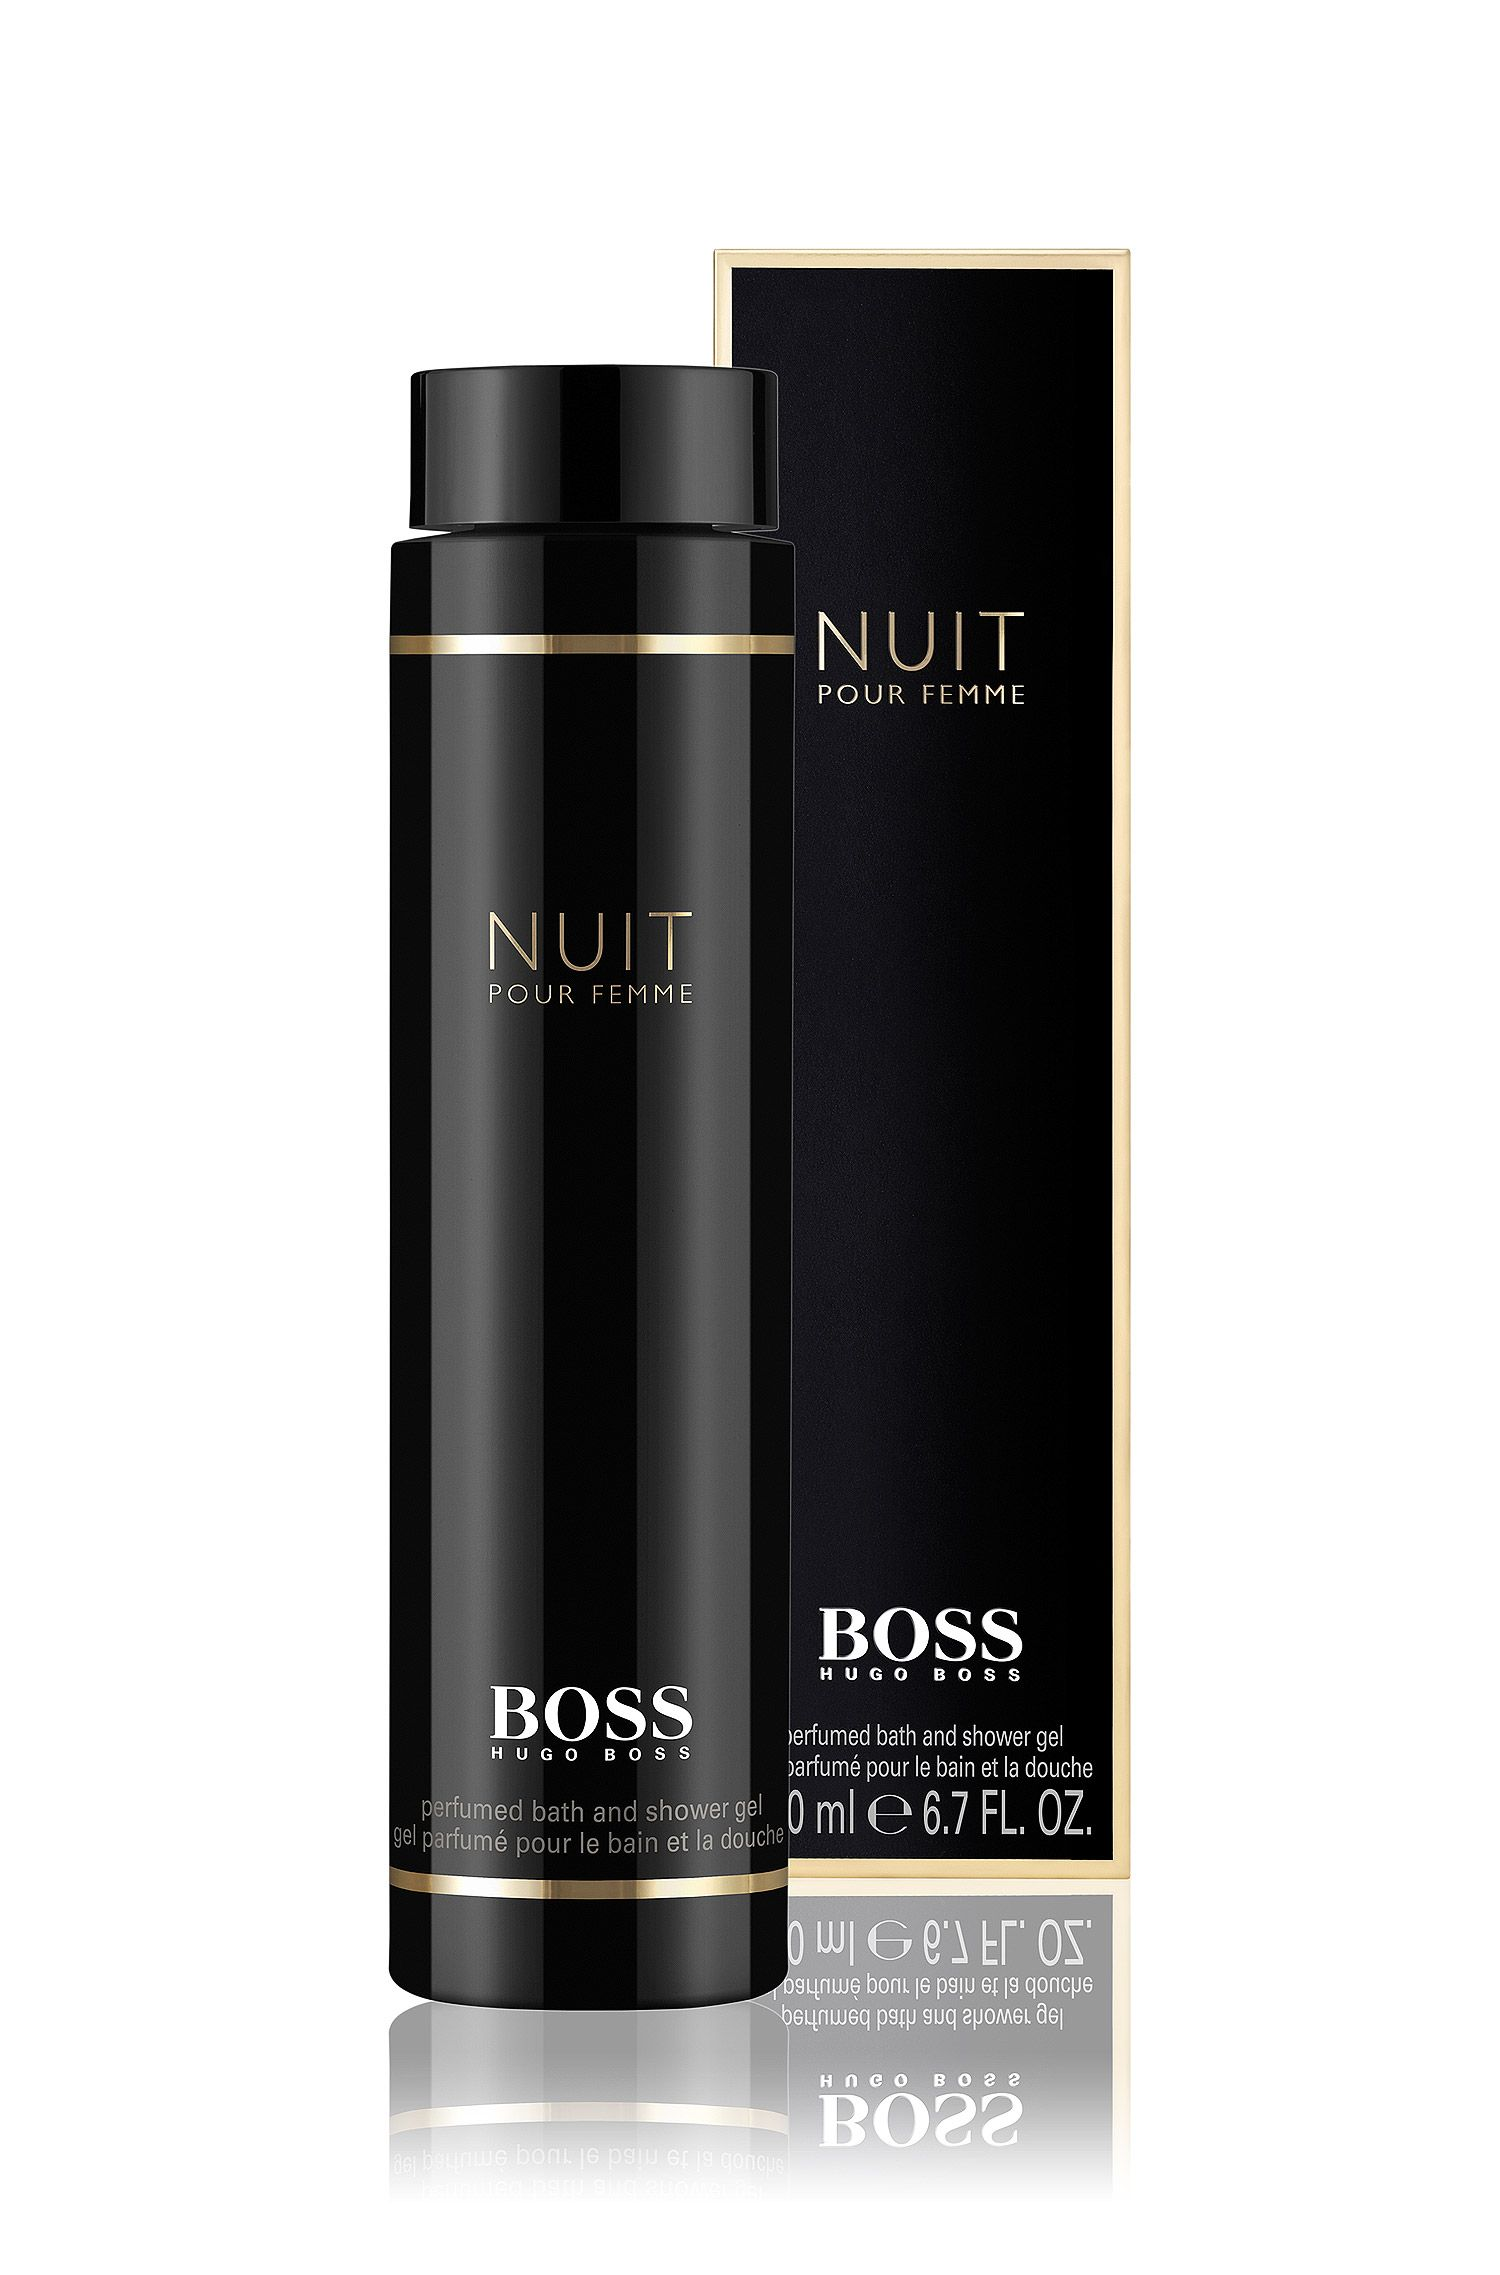 BOSS Nuit Showergel 200 ml